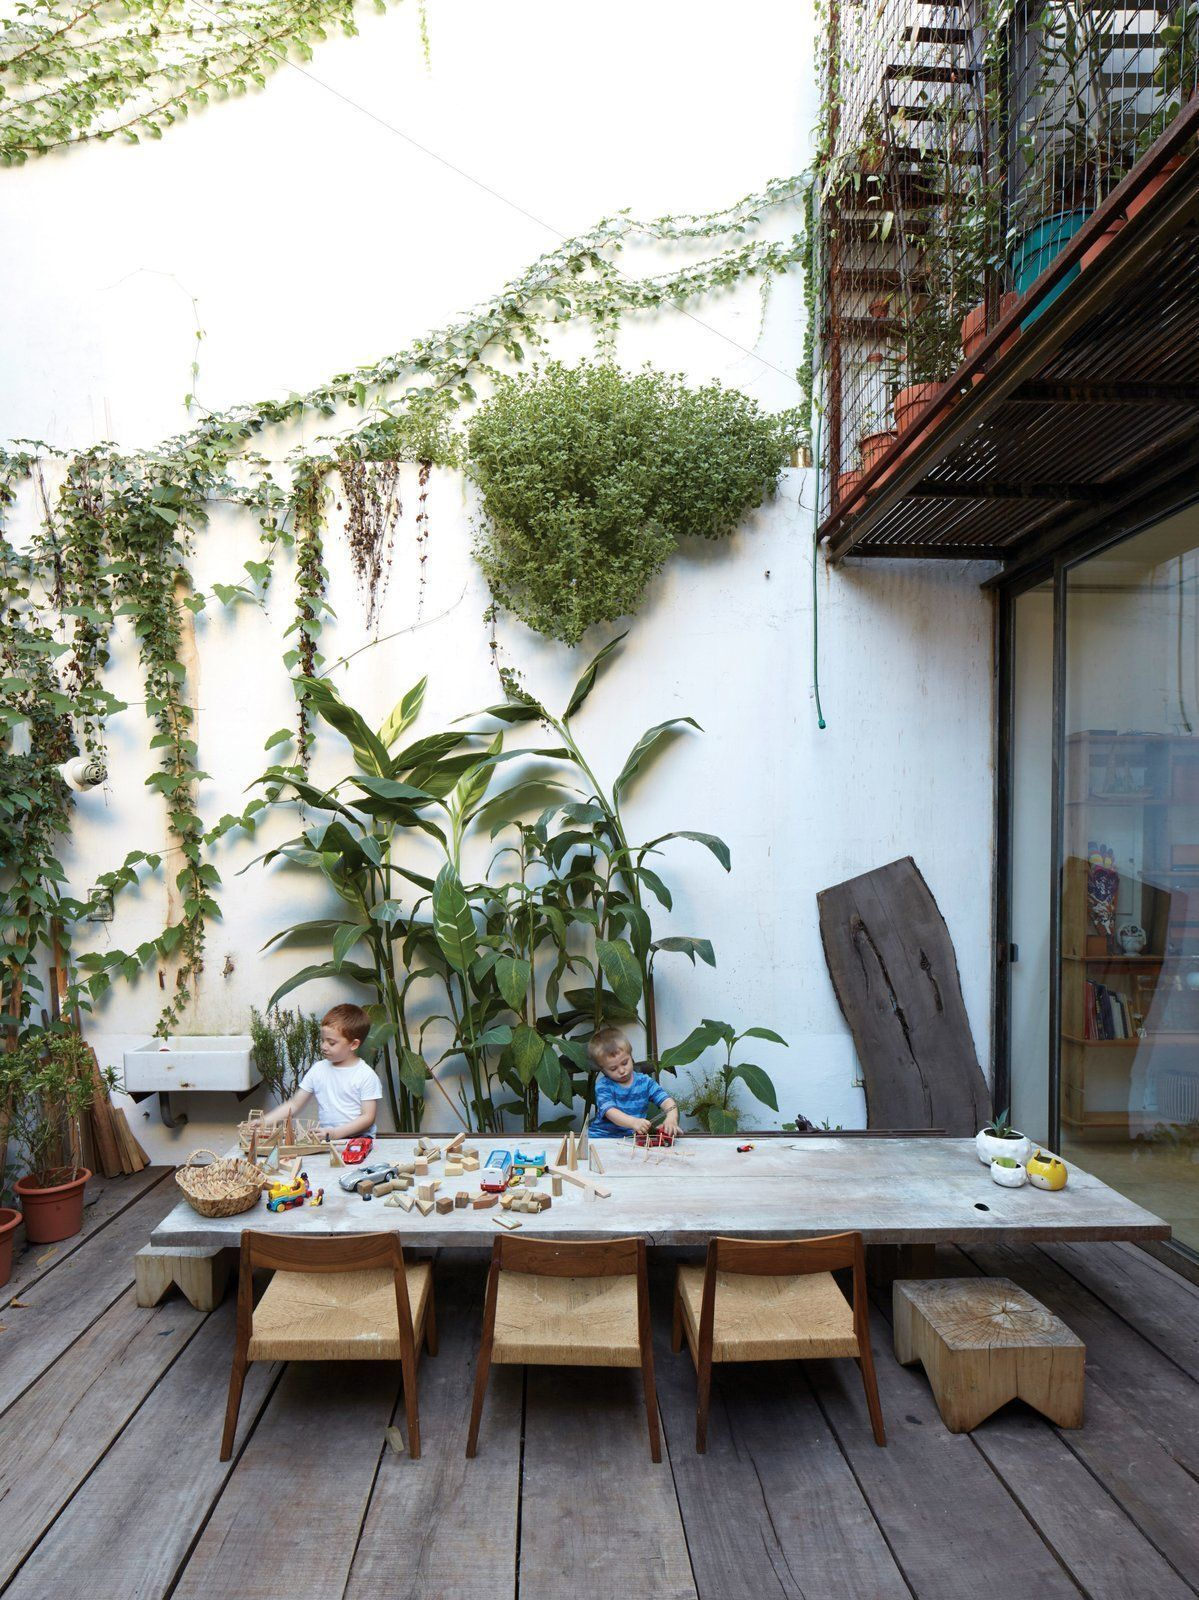 06 -Plants adorn a large wall without charm